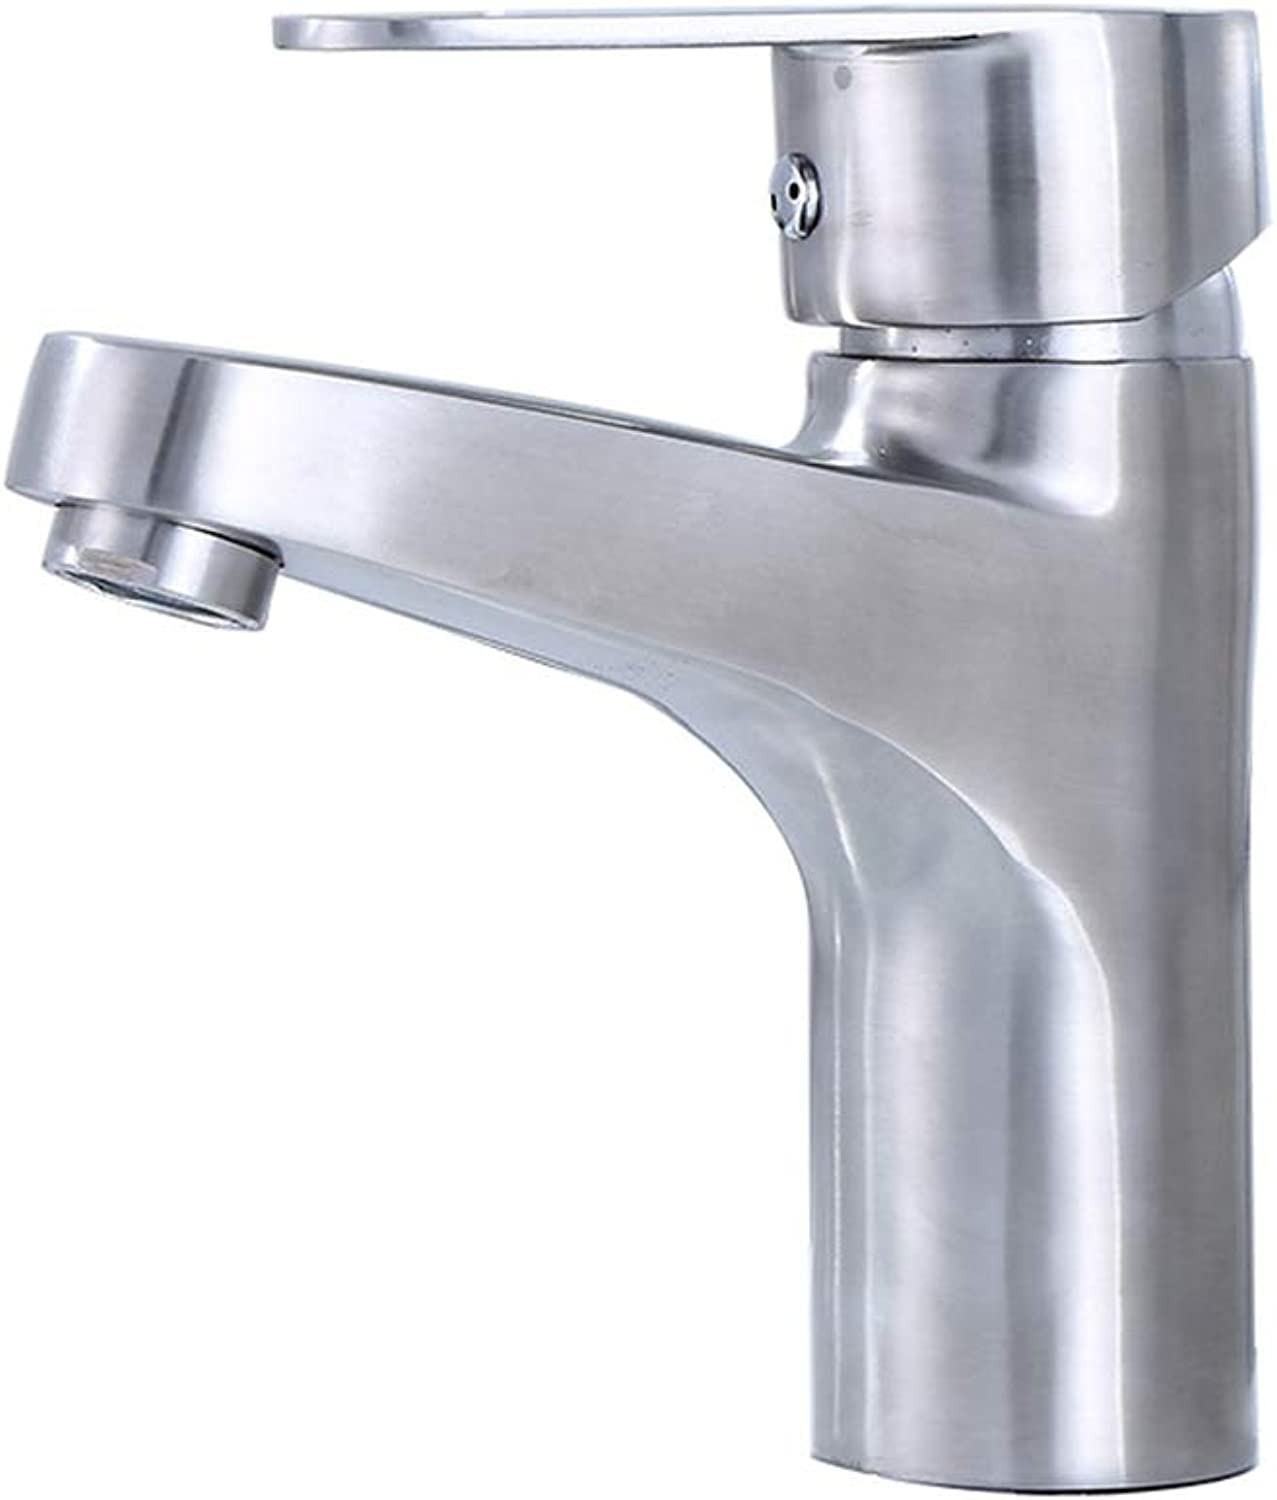 WAWRR Bathroom Sink Faucet,basin hot and cold water faucet, 304 stainless steelsingle hole bathroom basin Deck Mounted Single Handle